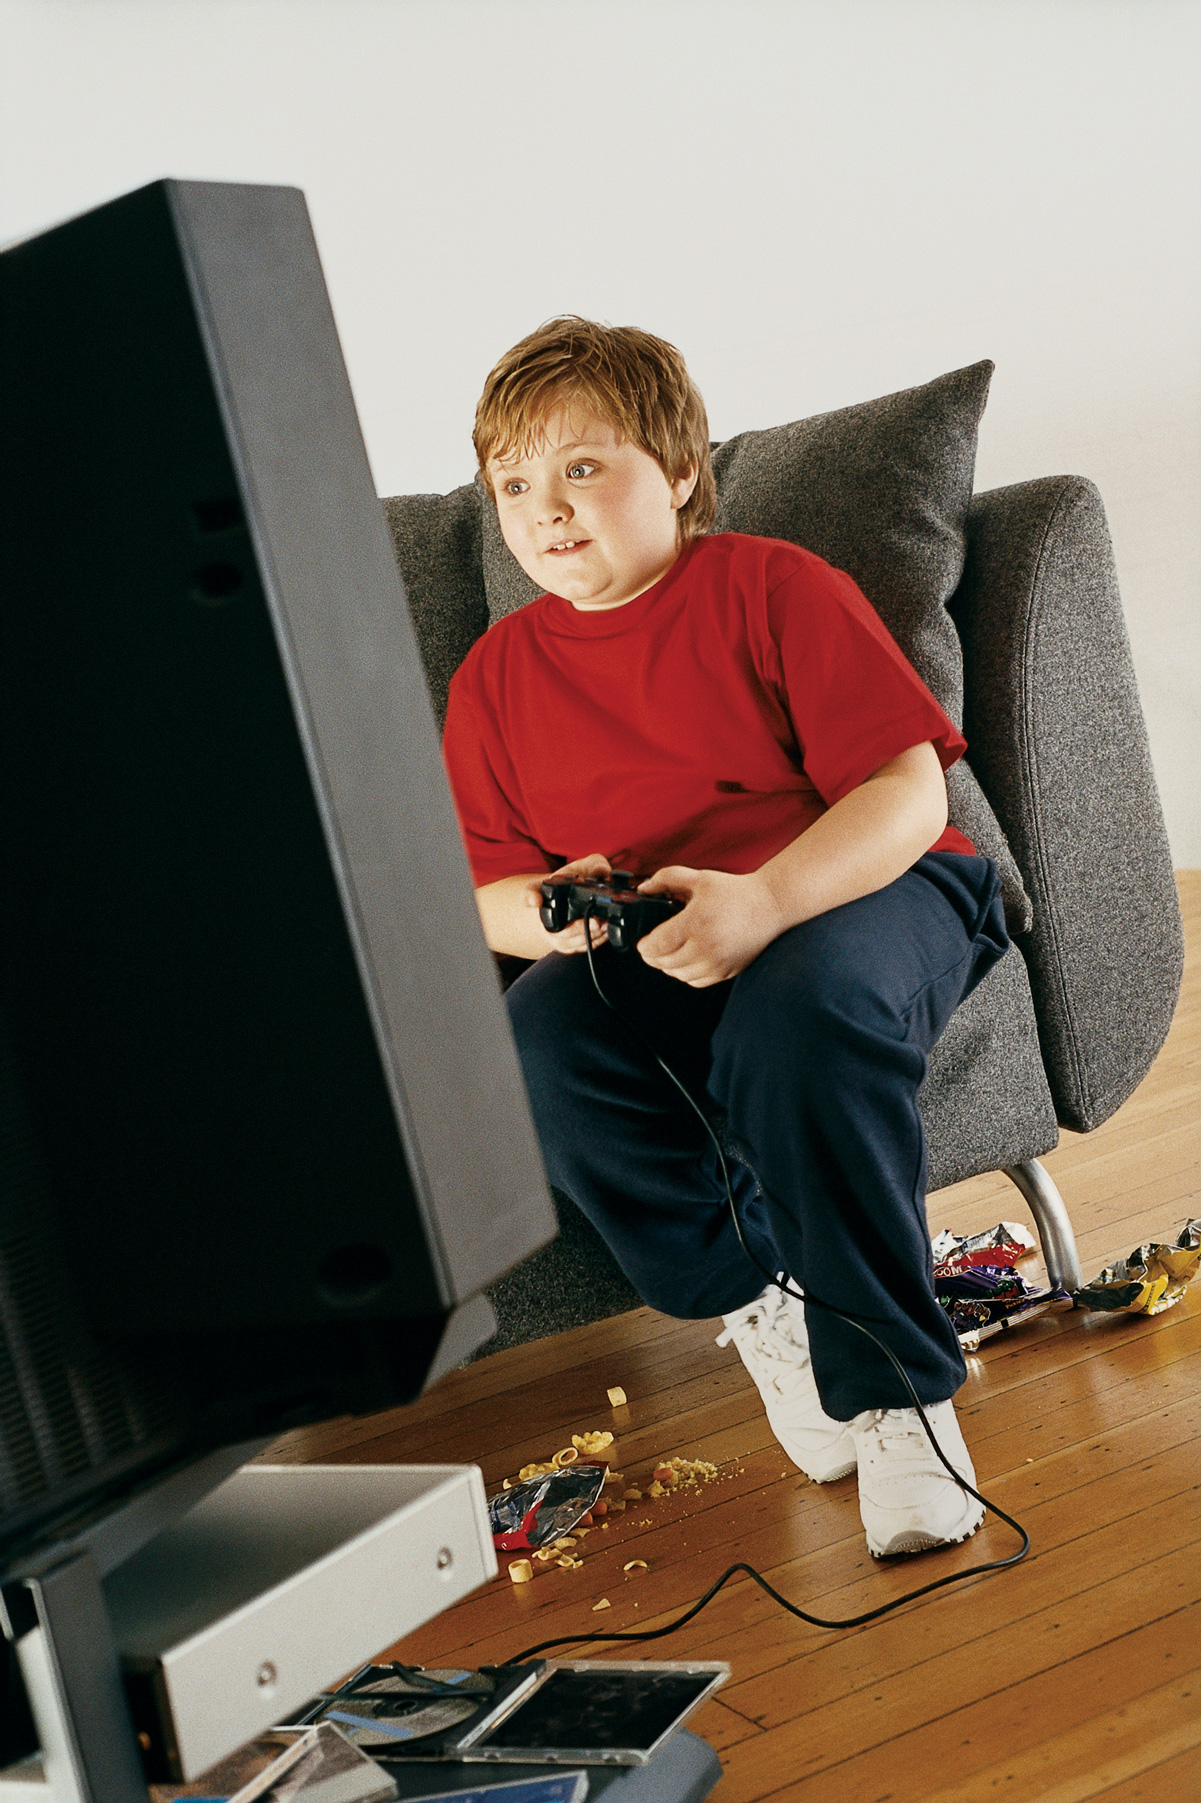 effects of sedentary lifestyle on obesity Too much time in front of screens combined with a sedentary lifestyle is taking its toll on our children's wellbeing sedentary lifestyles and too much screen time affect children's wellbeing obesity and healthy eating.